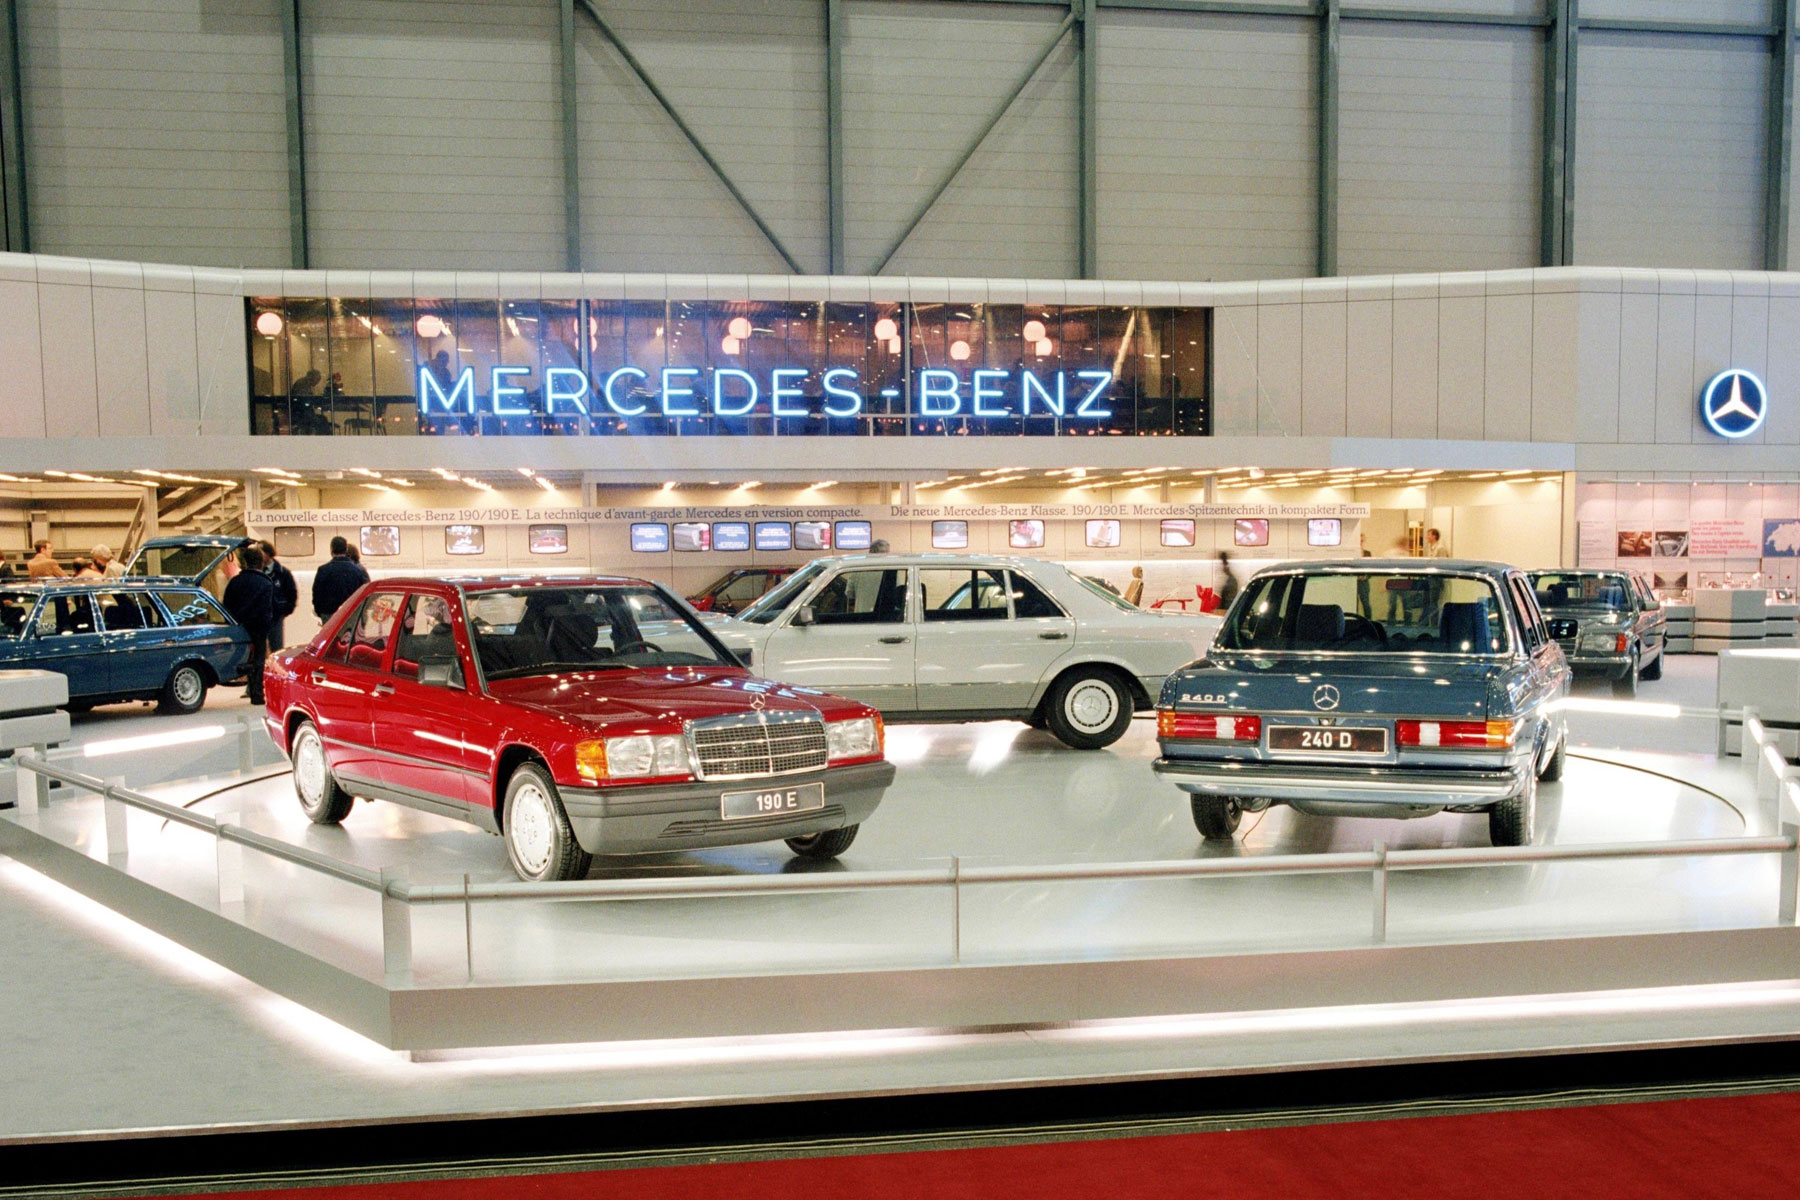 Opinion: Frankly, motor shows aren't what they used to be